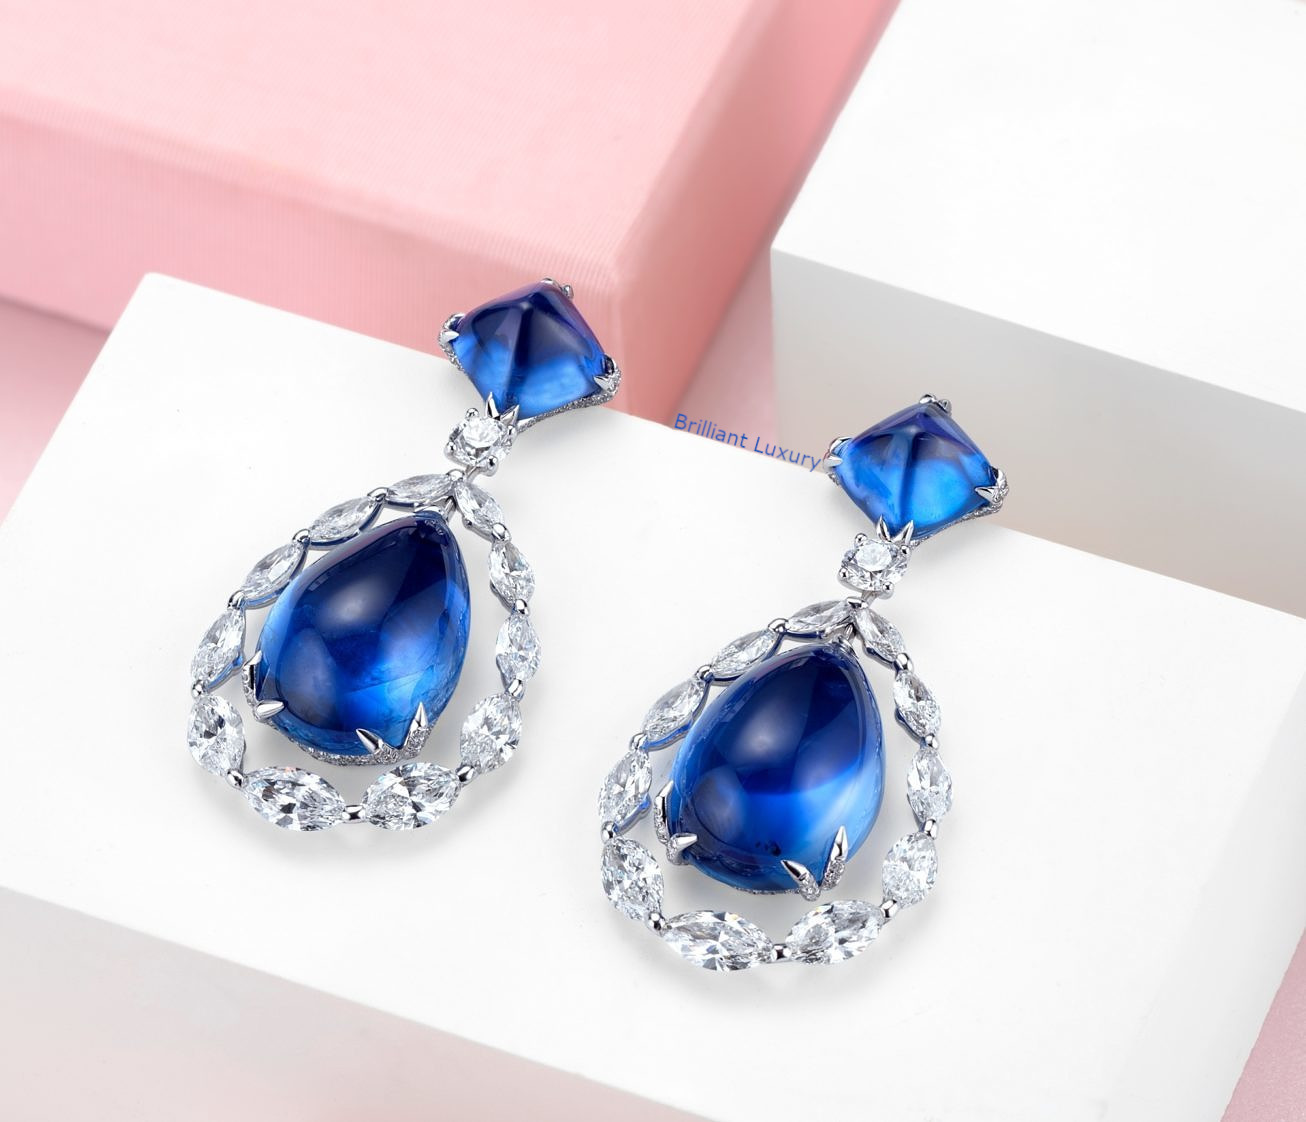 Sapphire high jewelry earrings